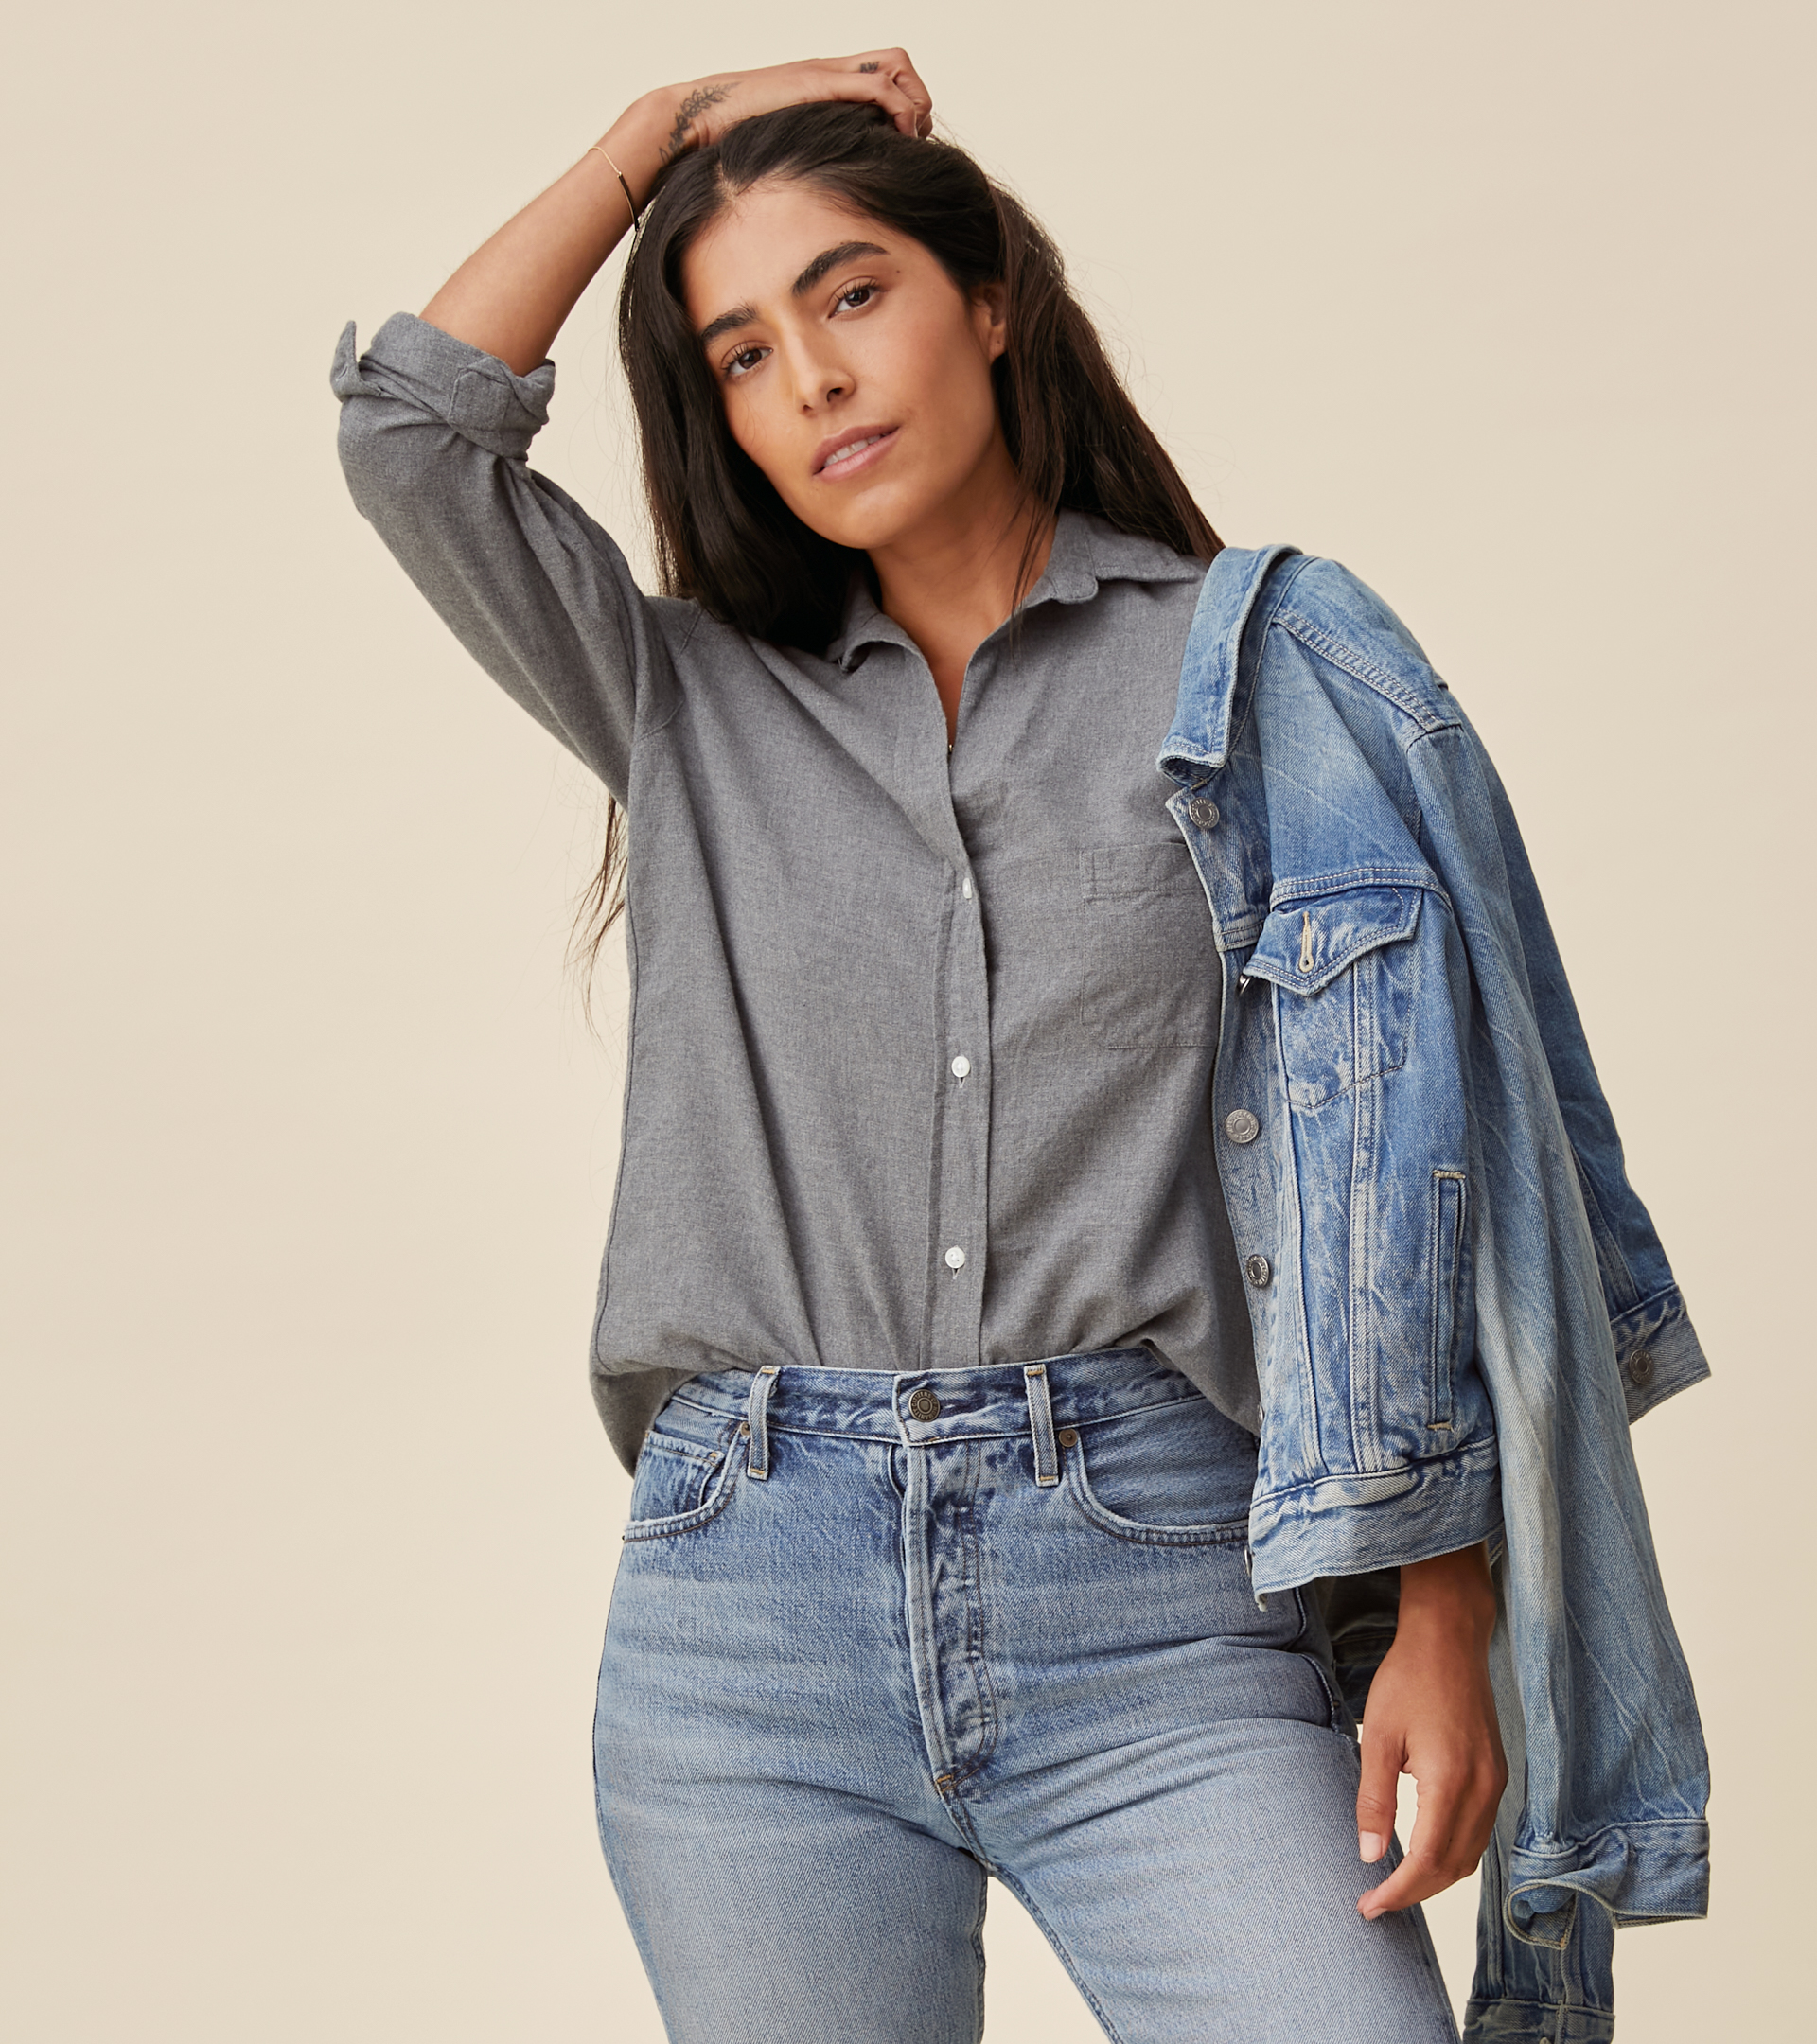 Image of The Hero Button-Up Shirt Gray Melange, Feathered Flannel